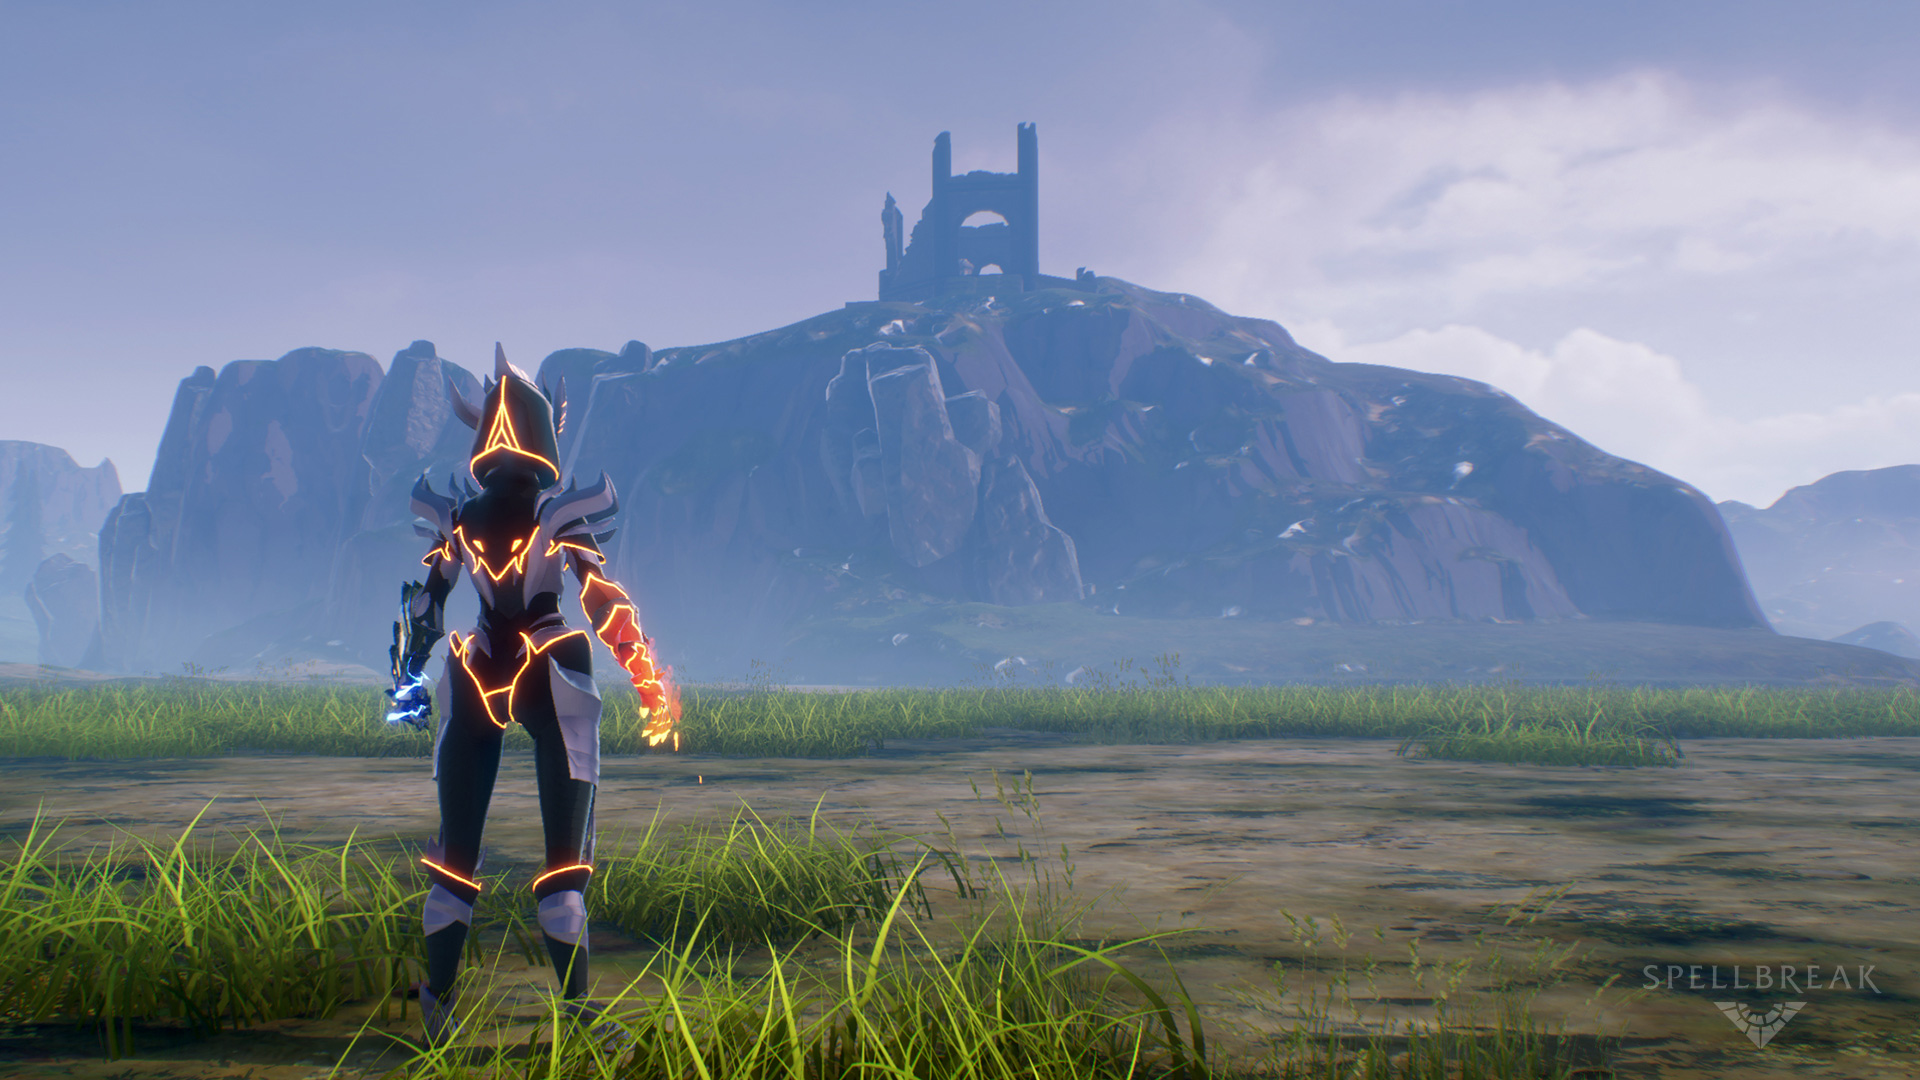 spellbreak-gallery-7.jpg